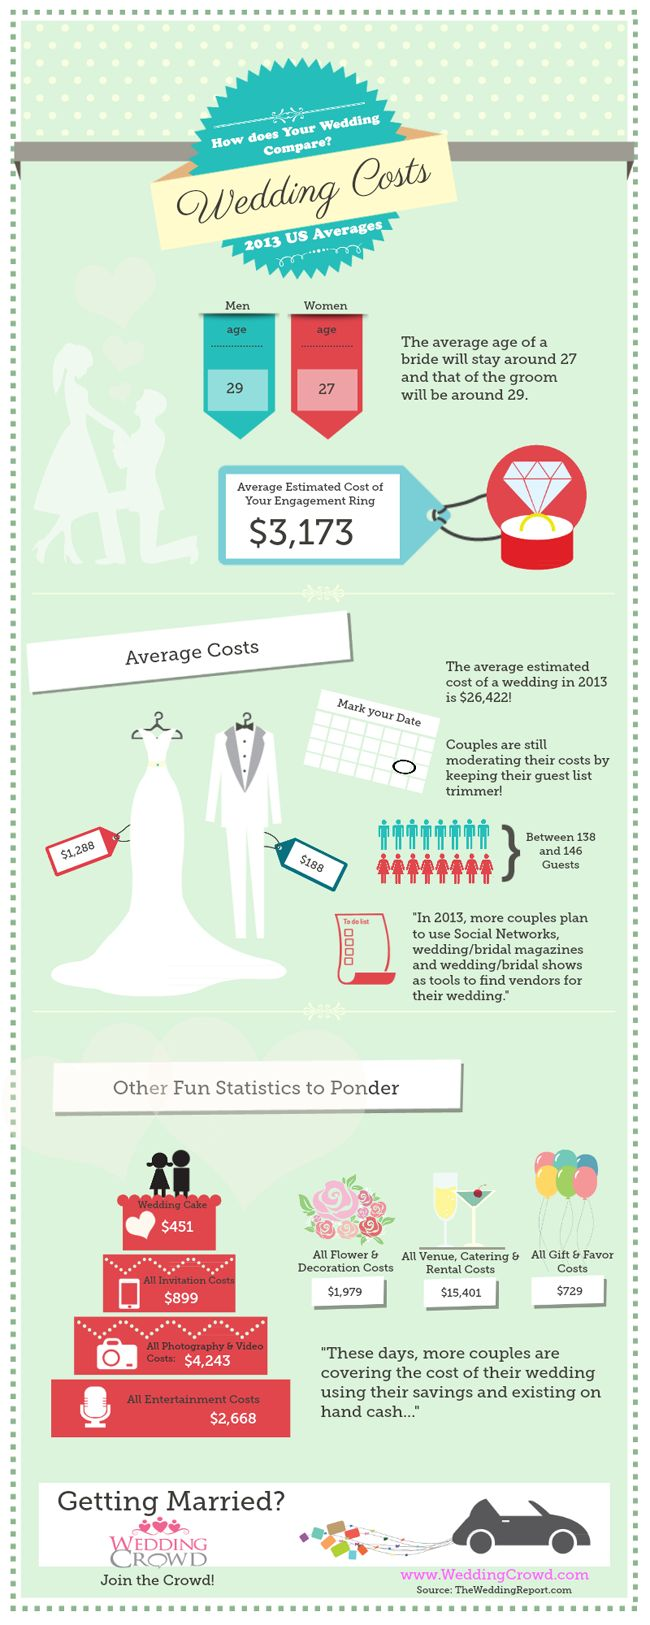 2013 Wedding Costs..How do Yours compare?